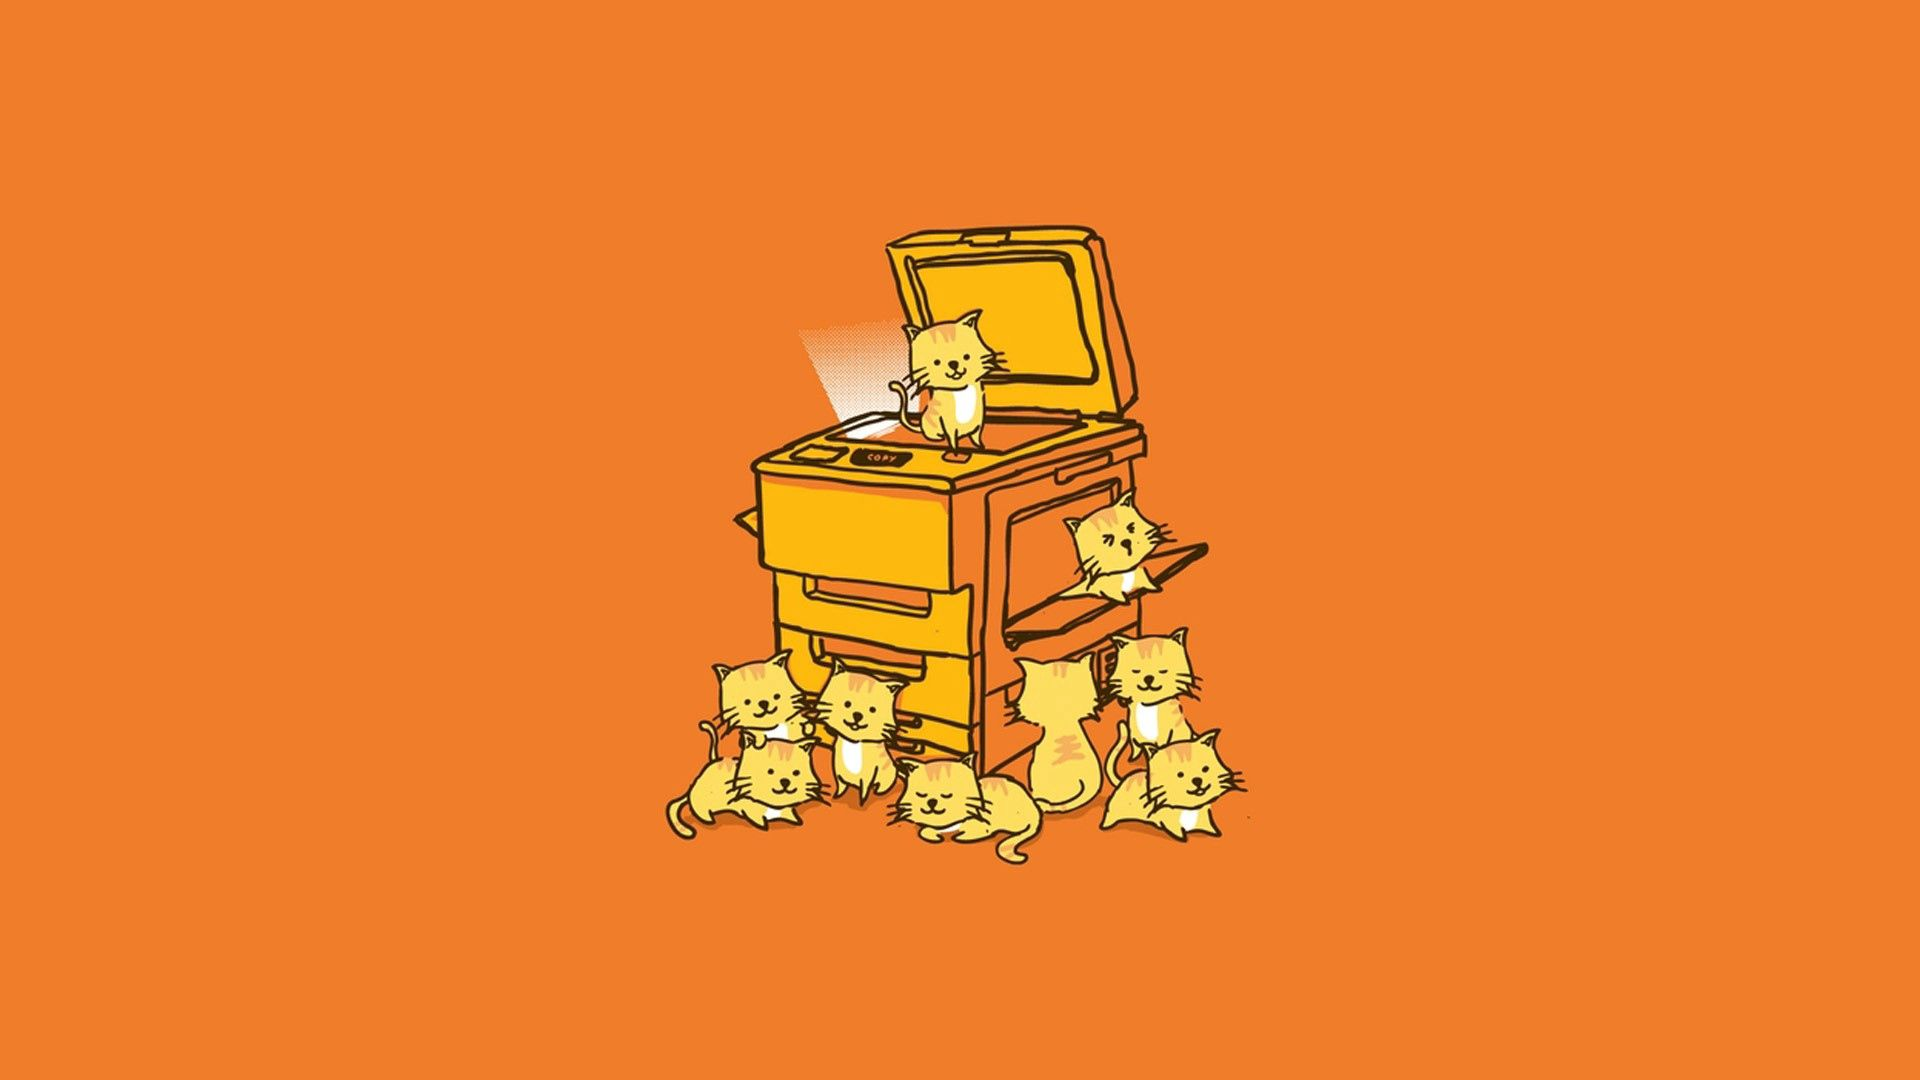 133884 Screensavers and Wallpapers Kittens for phone. Download Vector, Lot, Happiness, Kittens, Printer pictures for free